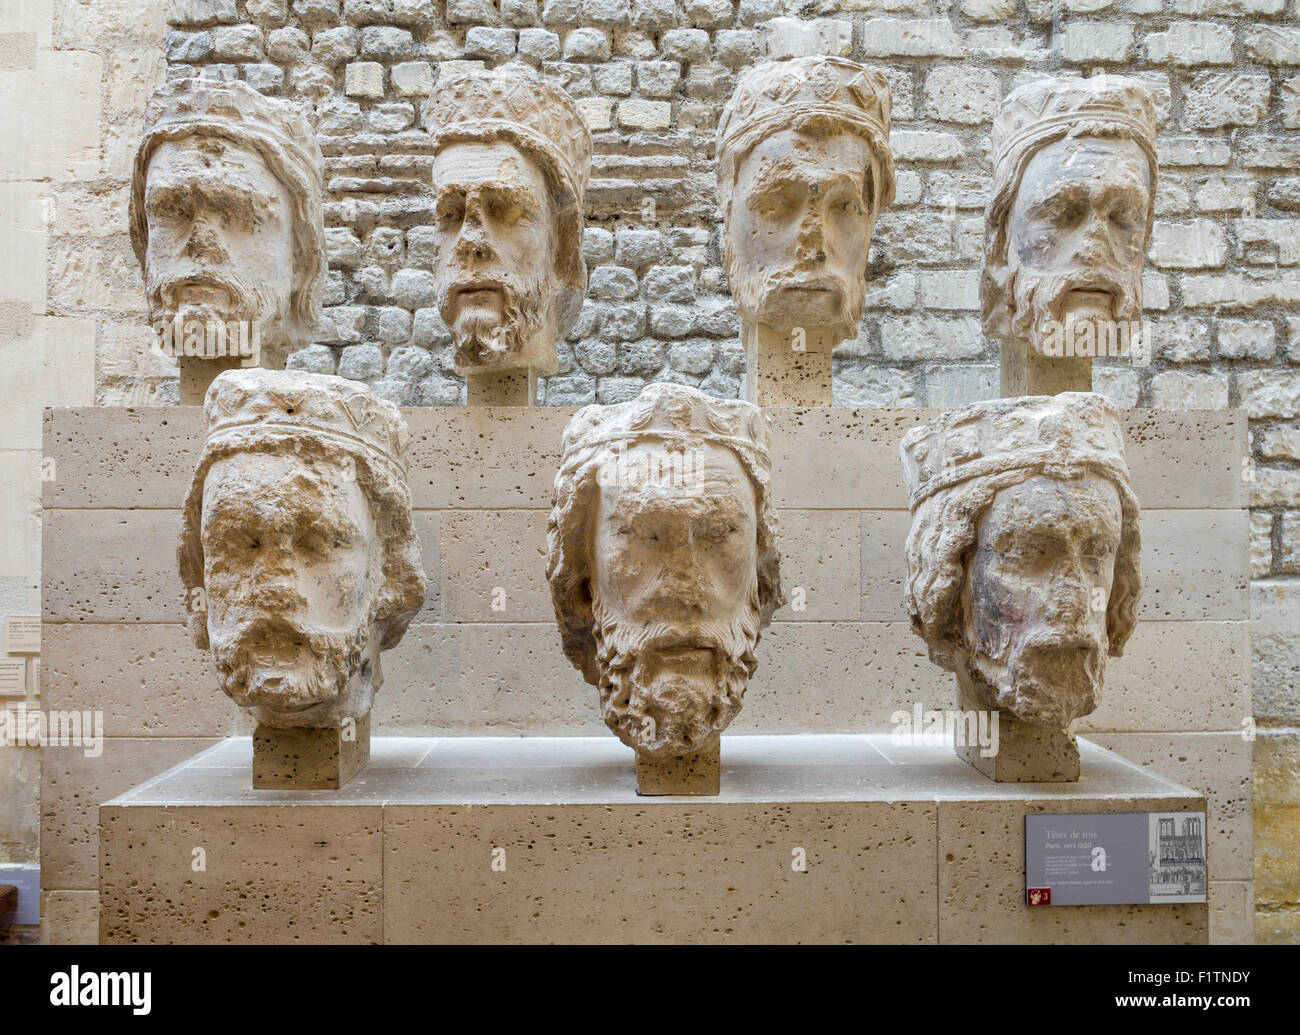 Seven French Kings as sculpted heads. Sculptures of French Kings heads from 1220 originally adorned the front of - Stock Image